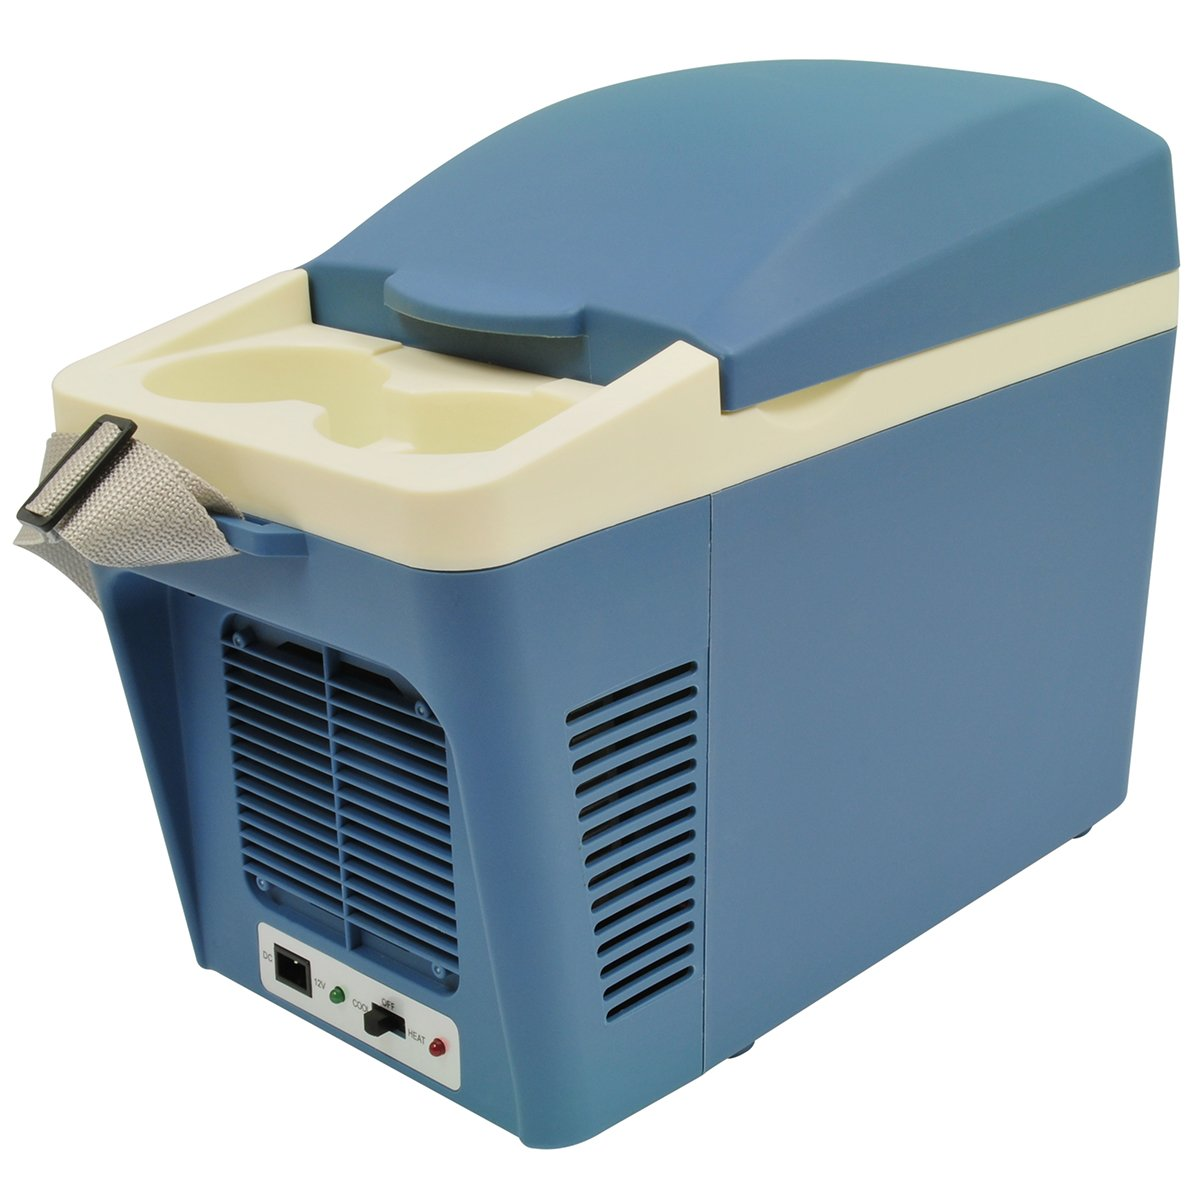 RoadPro RPAT-788 7 Liter 12V Cooler//Warmer with Cup Holders